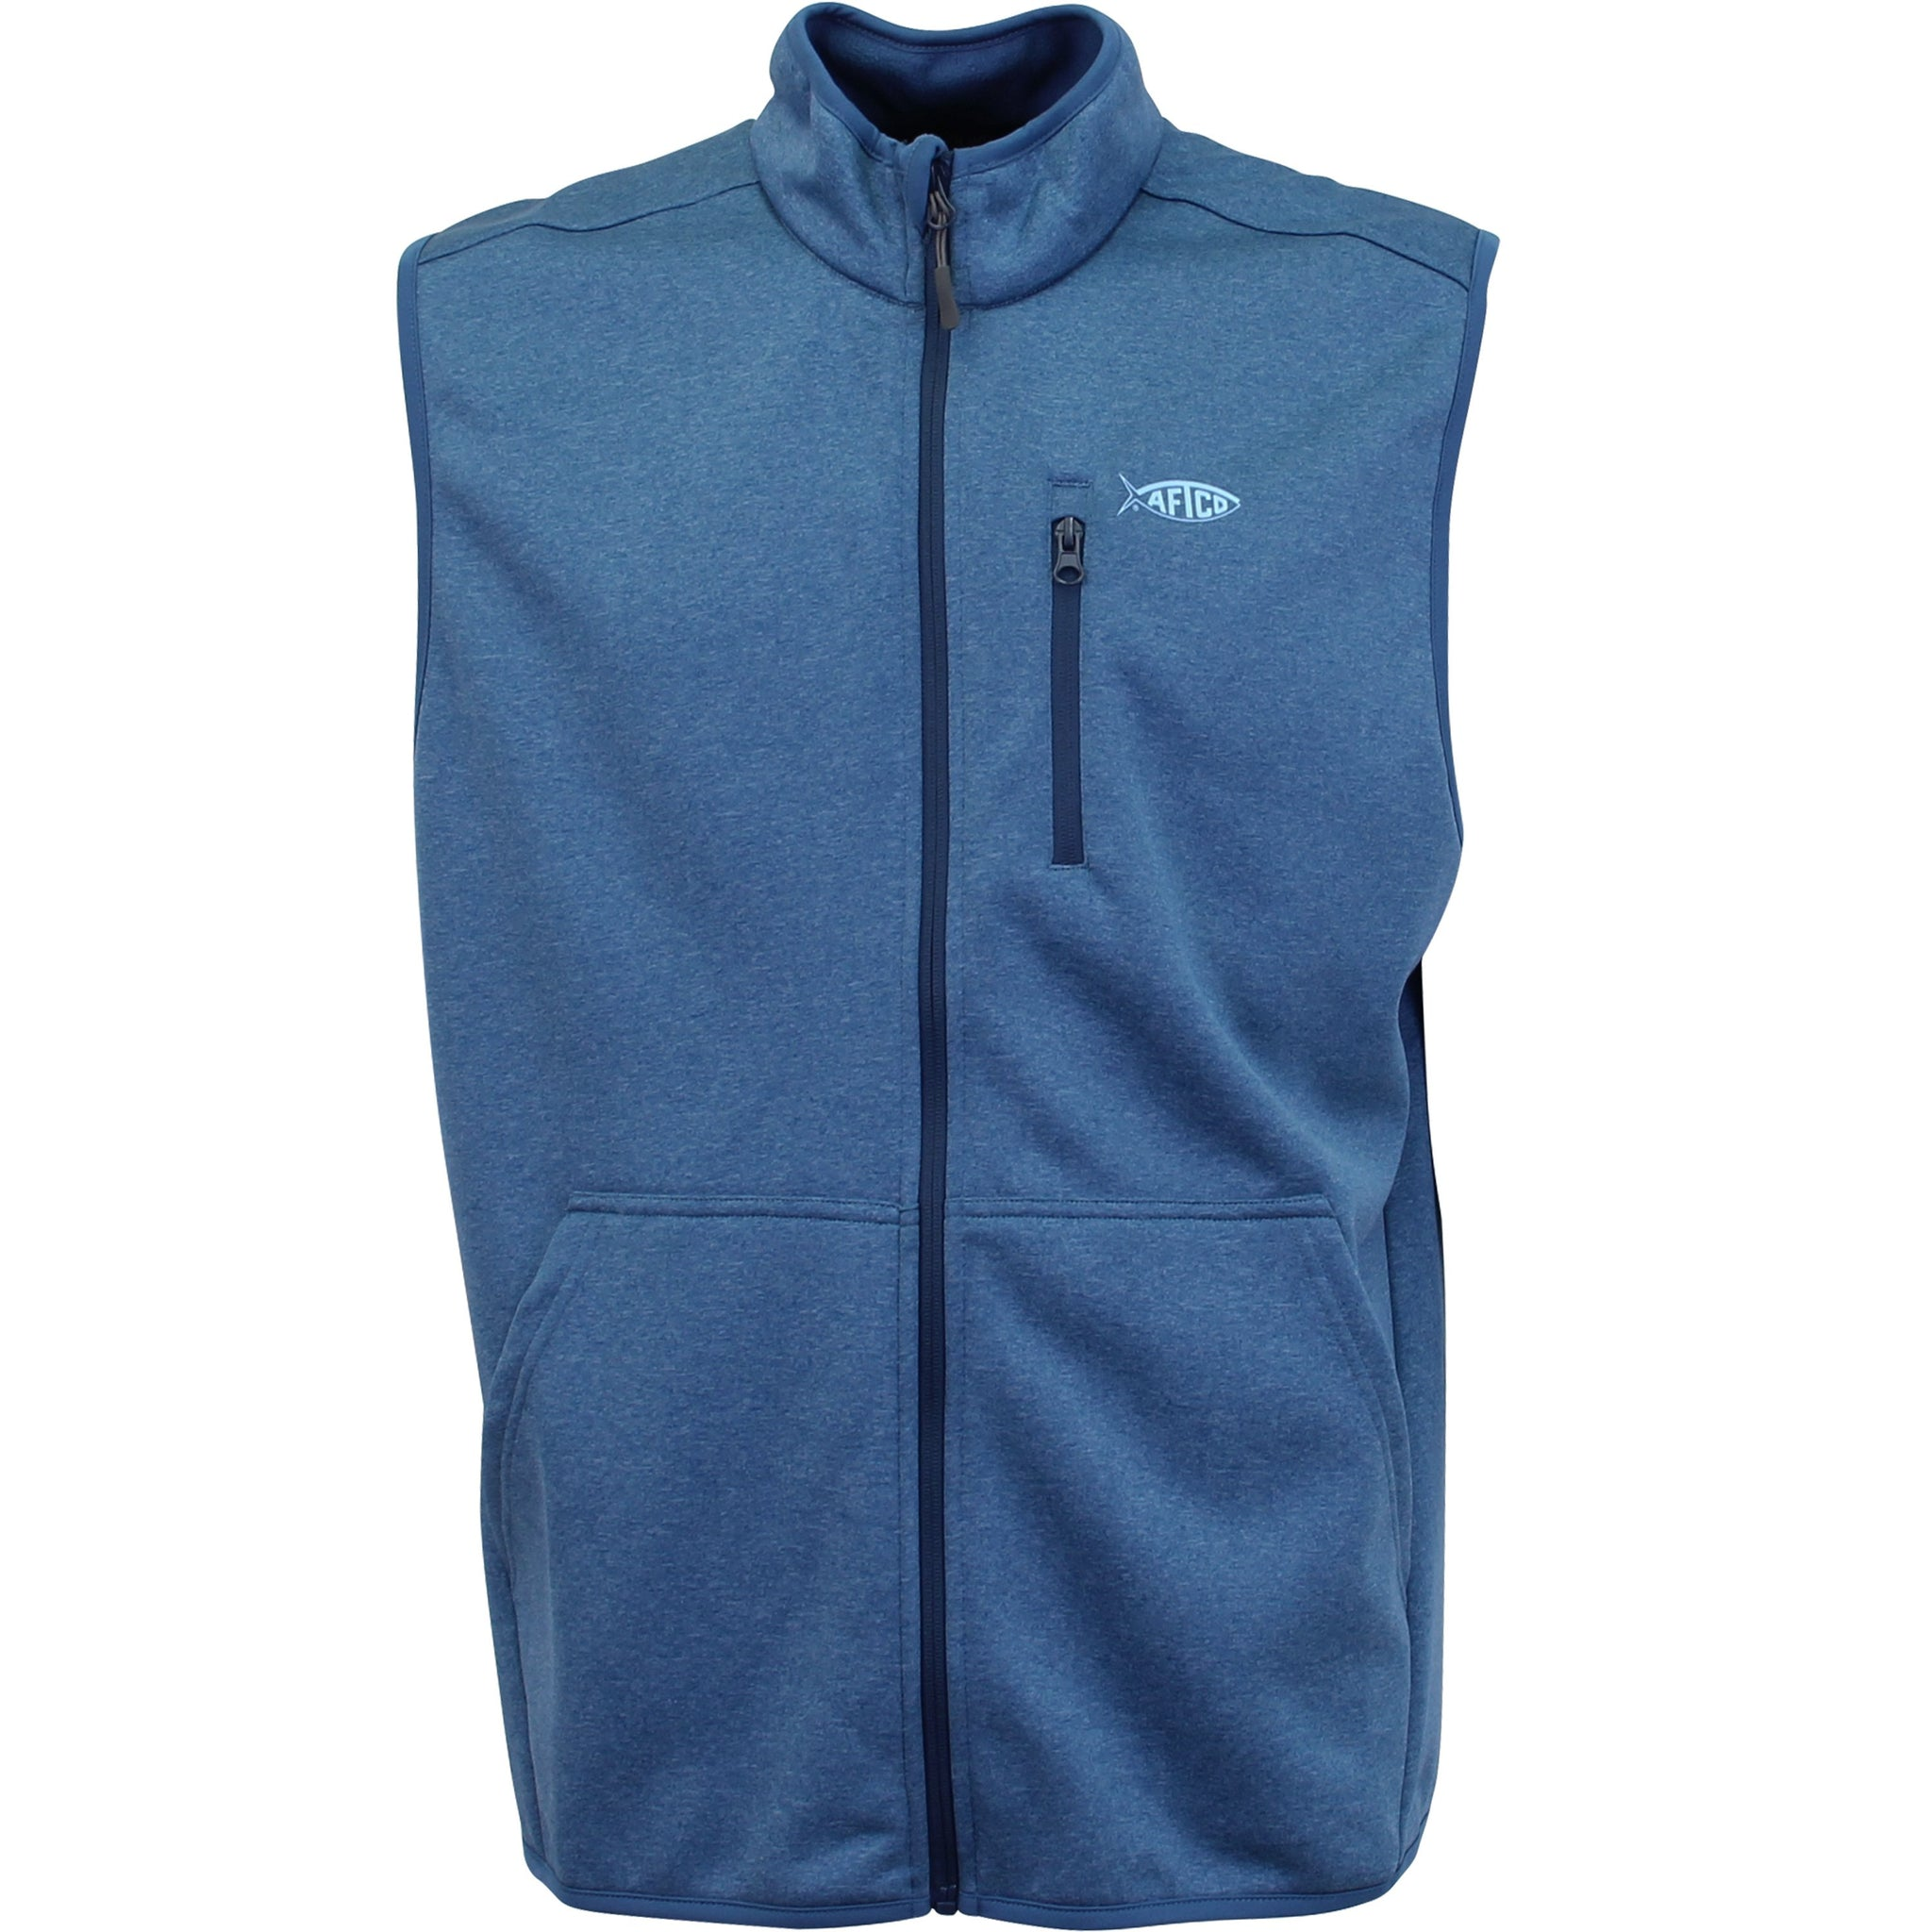 Vista Performance Vest